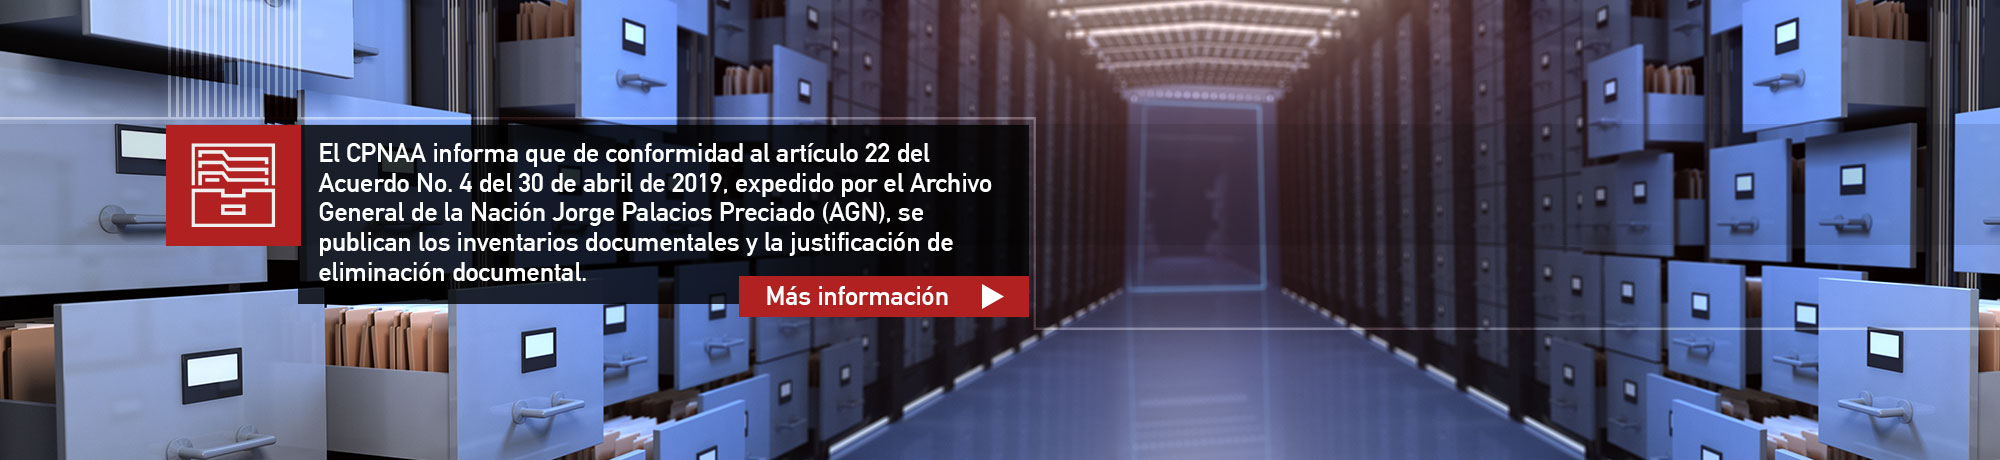 Inventario Documental